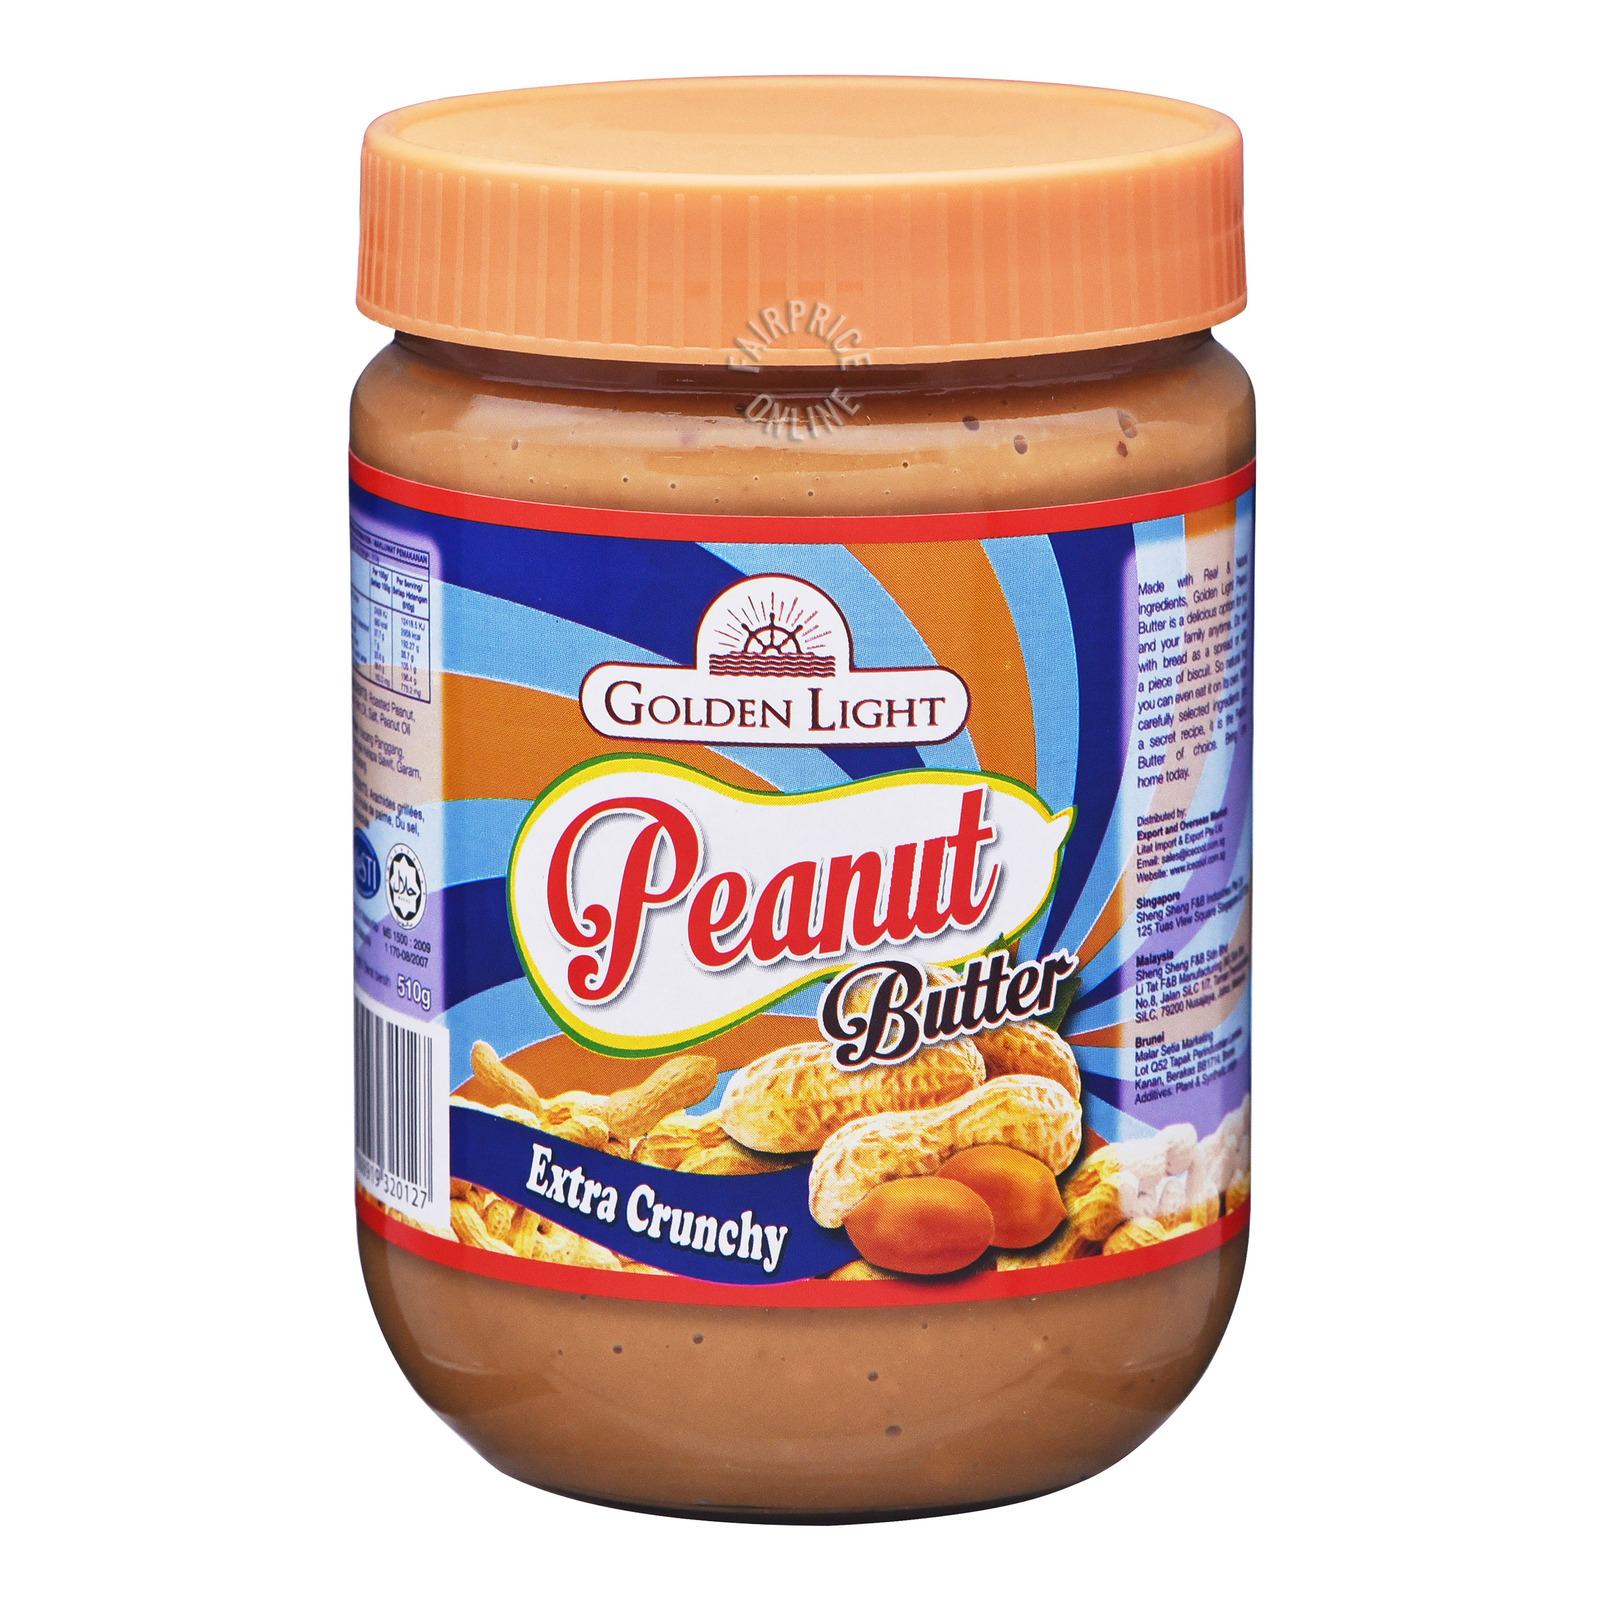 Golden Light Peanut Butter Spread - Extra Crunchy